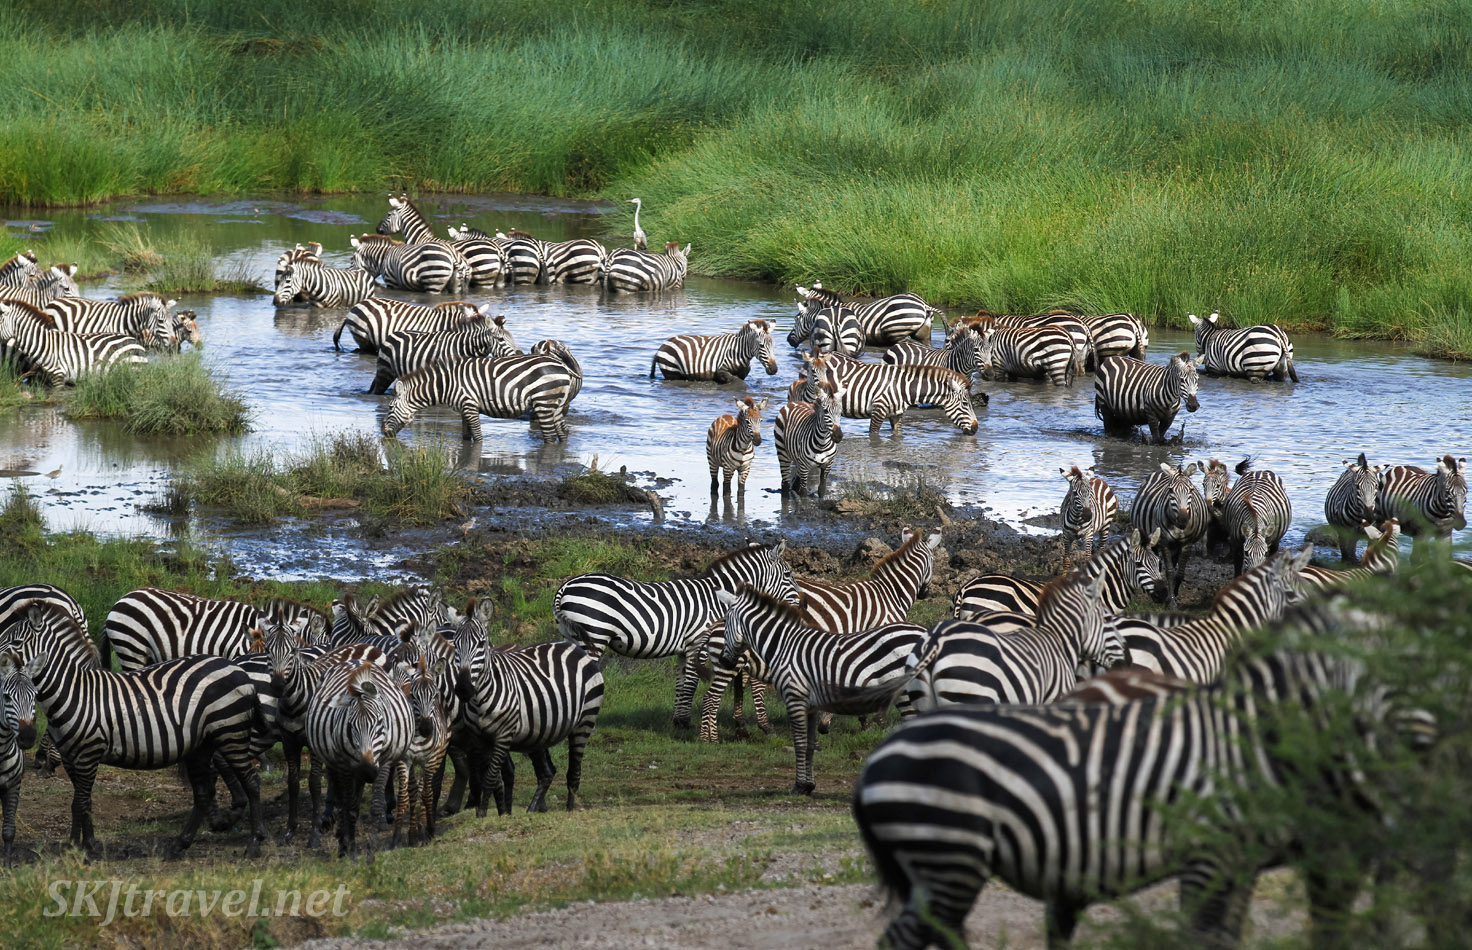 Zebras crossing water in a marsh in Ndutu, Tanzania.